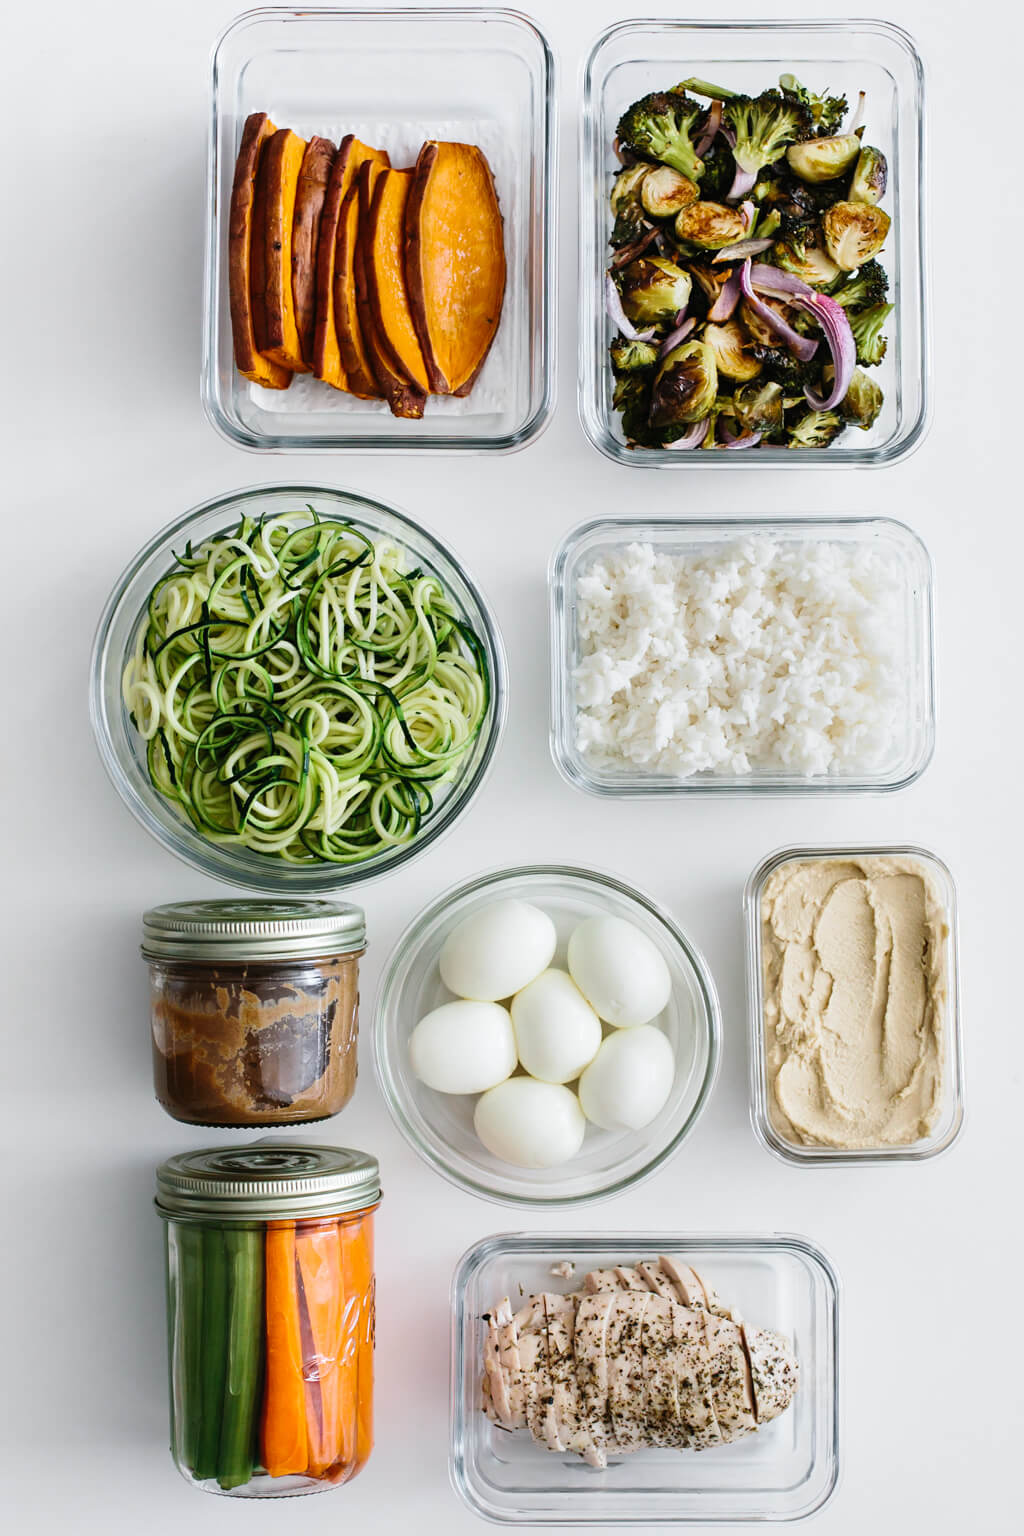 Meal Prep Ideas to Save Time in the Kitchen